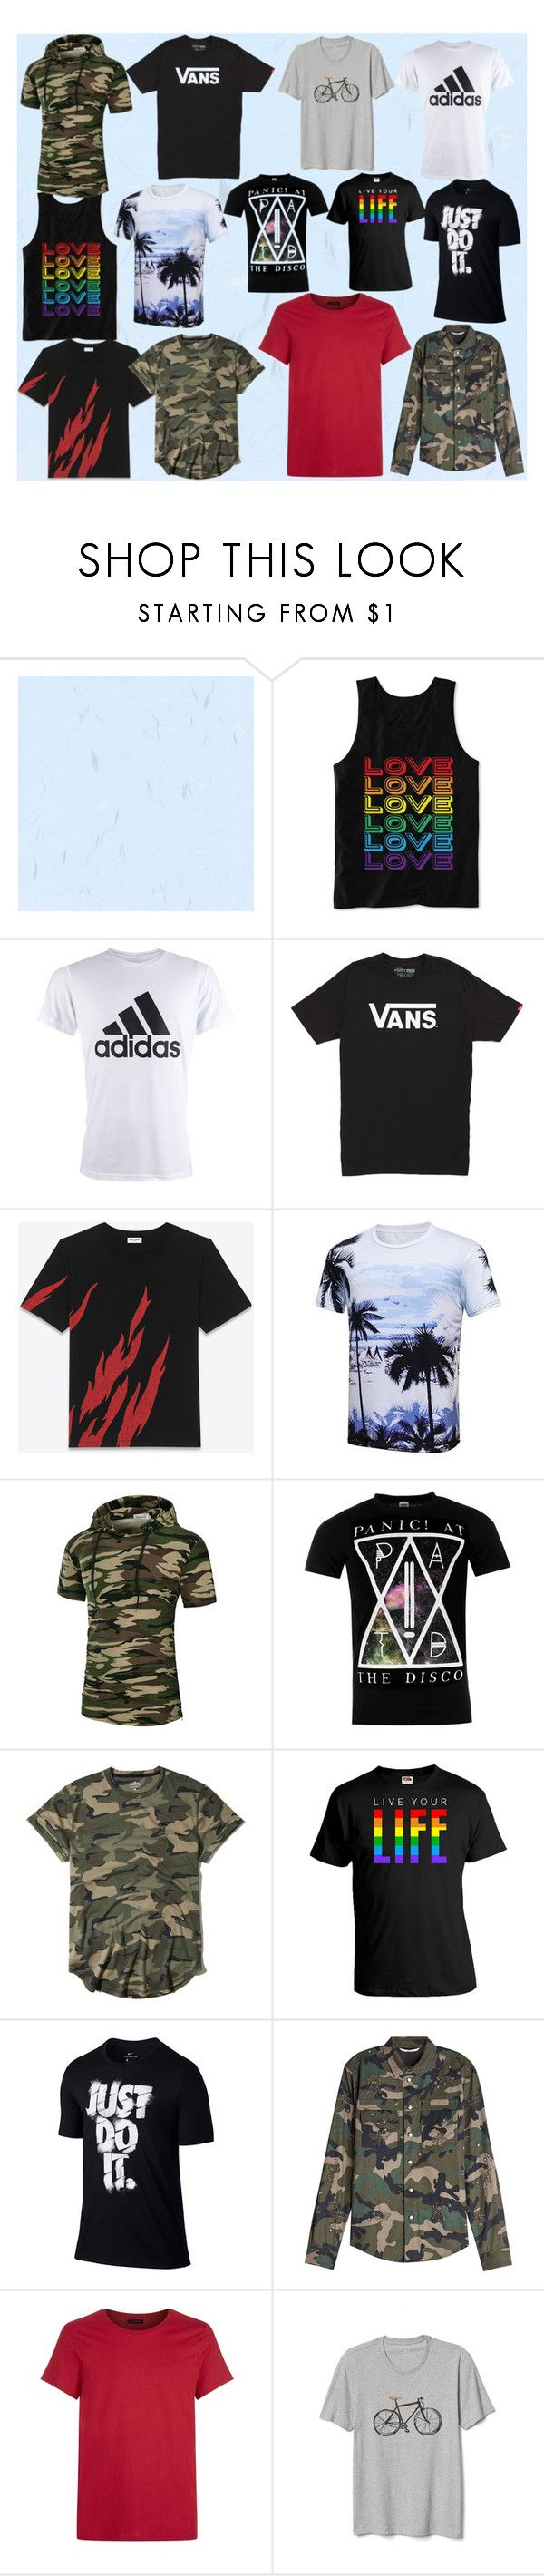 """""""mens shirts"""" by andieok on Polyvore featuring Hybrid, adidas, Vans, Yves Saint Laurent, Hollister Co., NIKE, Valentino, J.Lindeberg, Gap and men's fashion"""